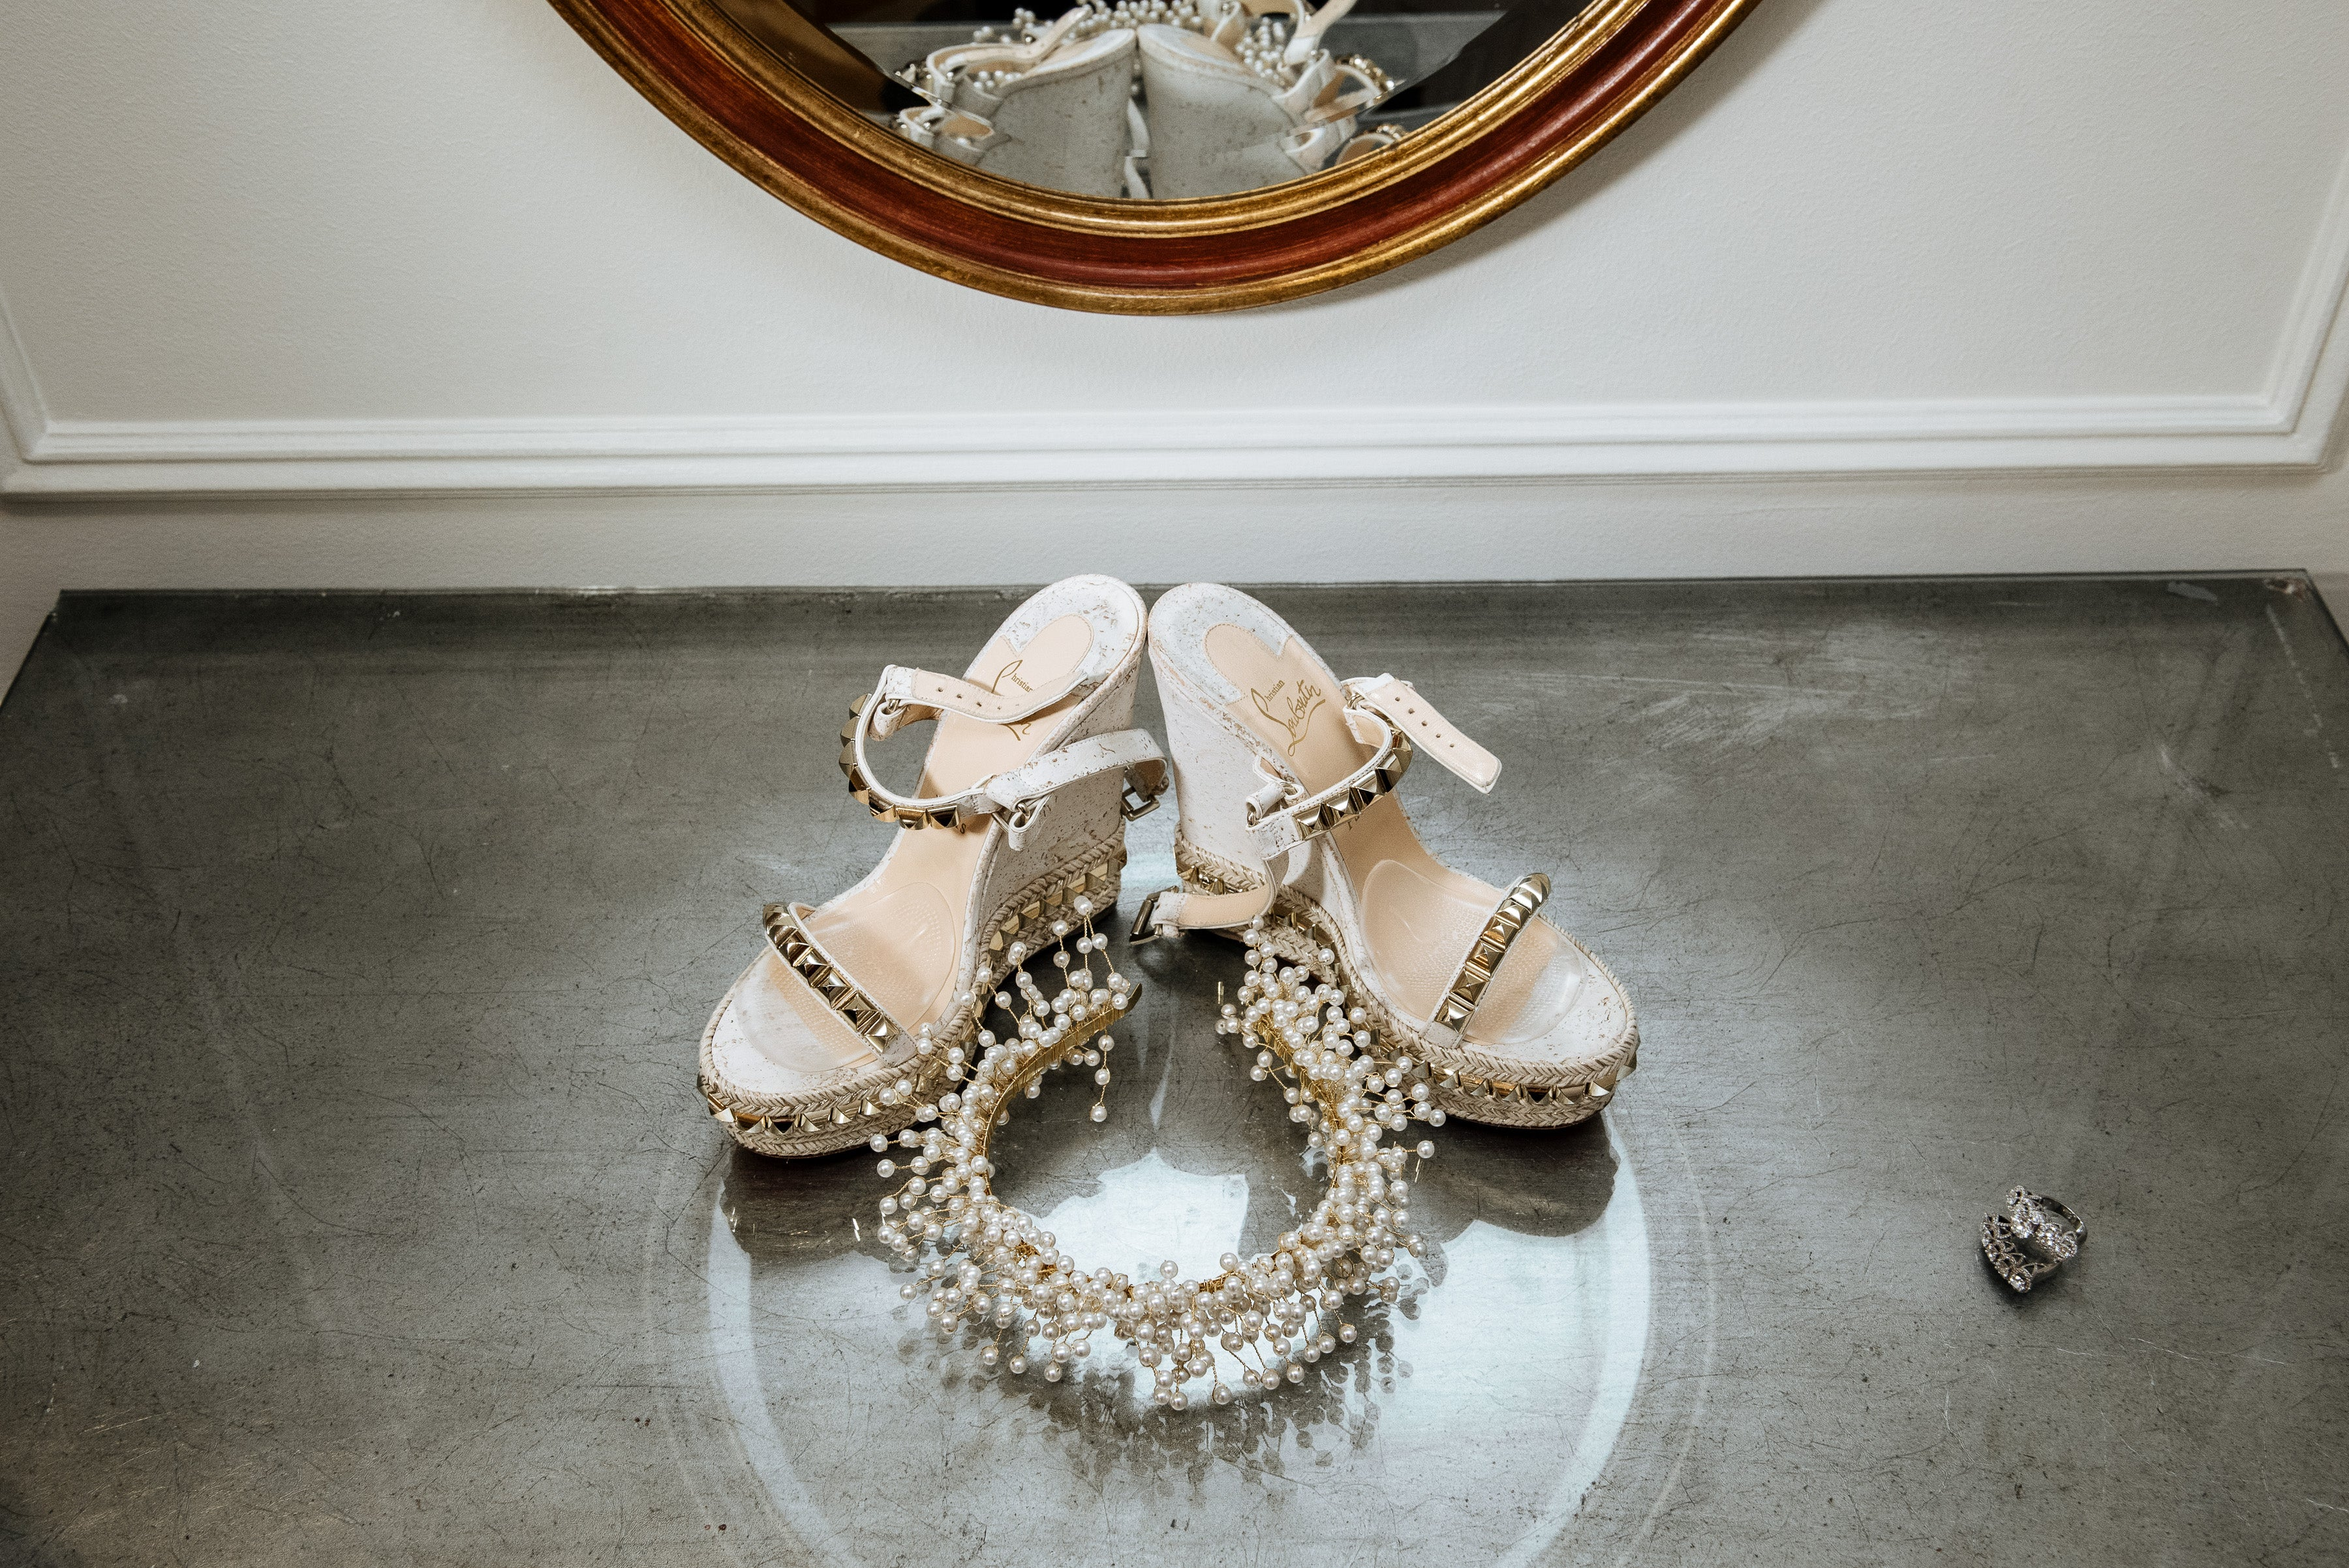 Bridal - Hair - Photography - Bride - Wedding - Jewelry - Headpiece - Crown - Tiara - Shoes